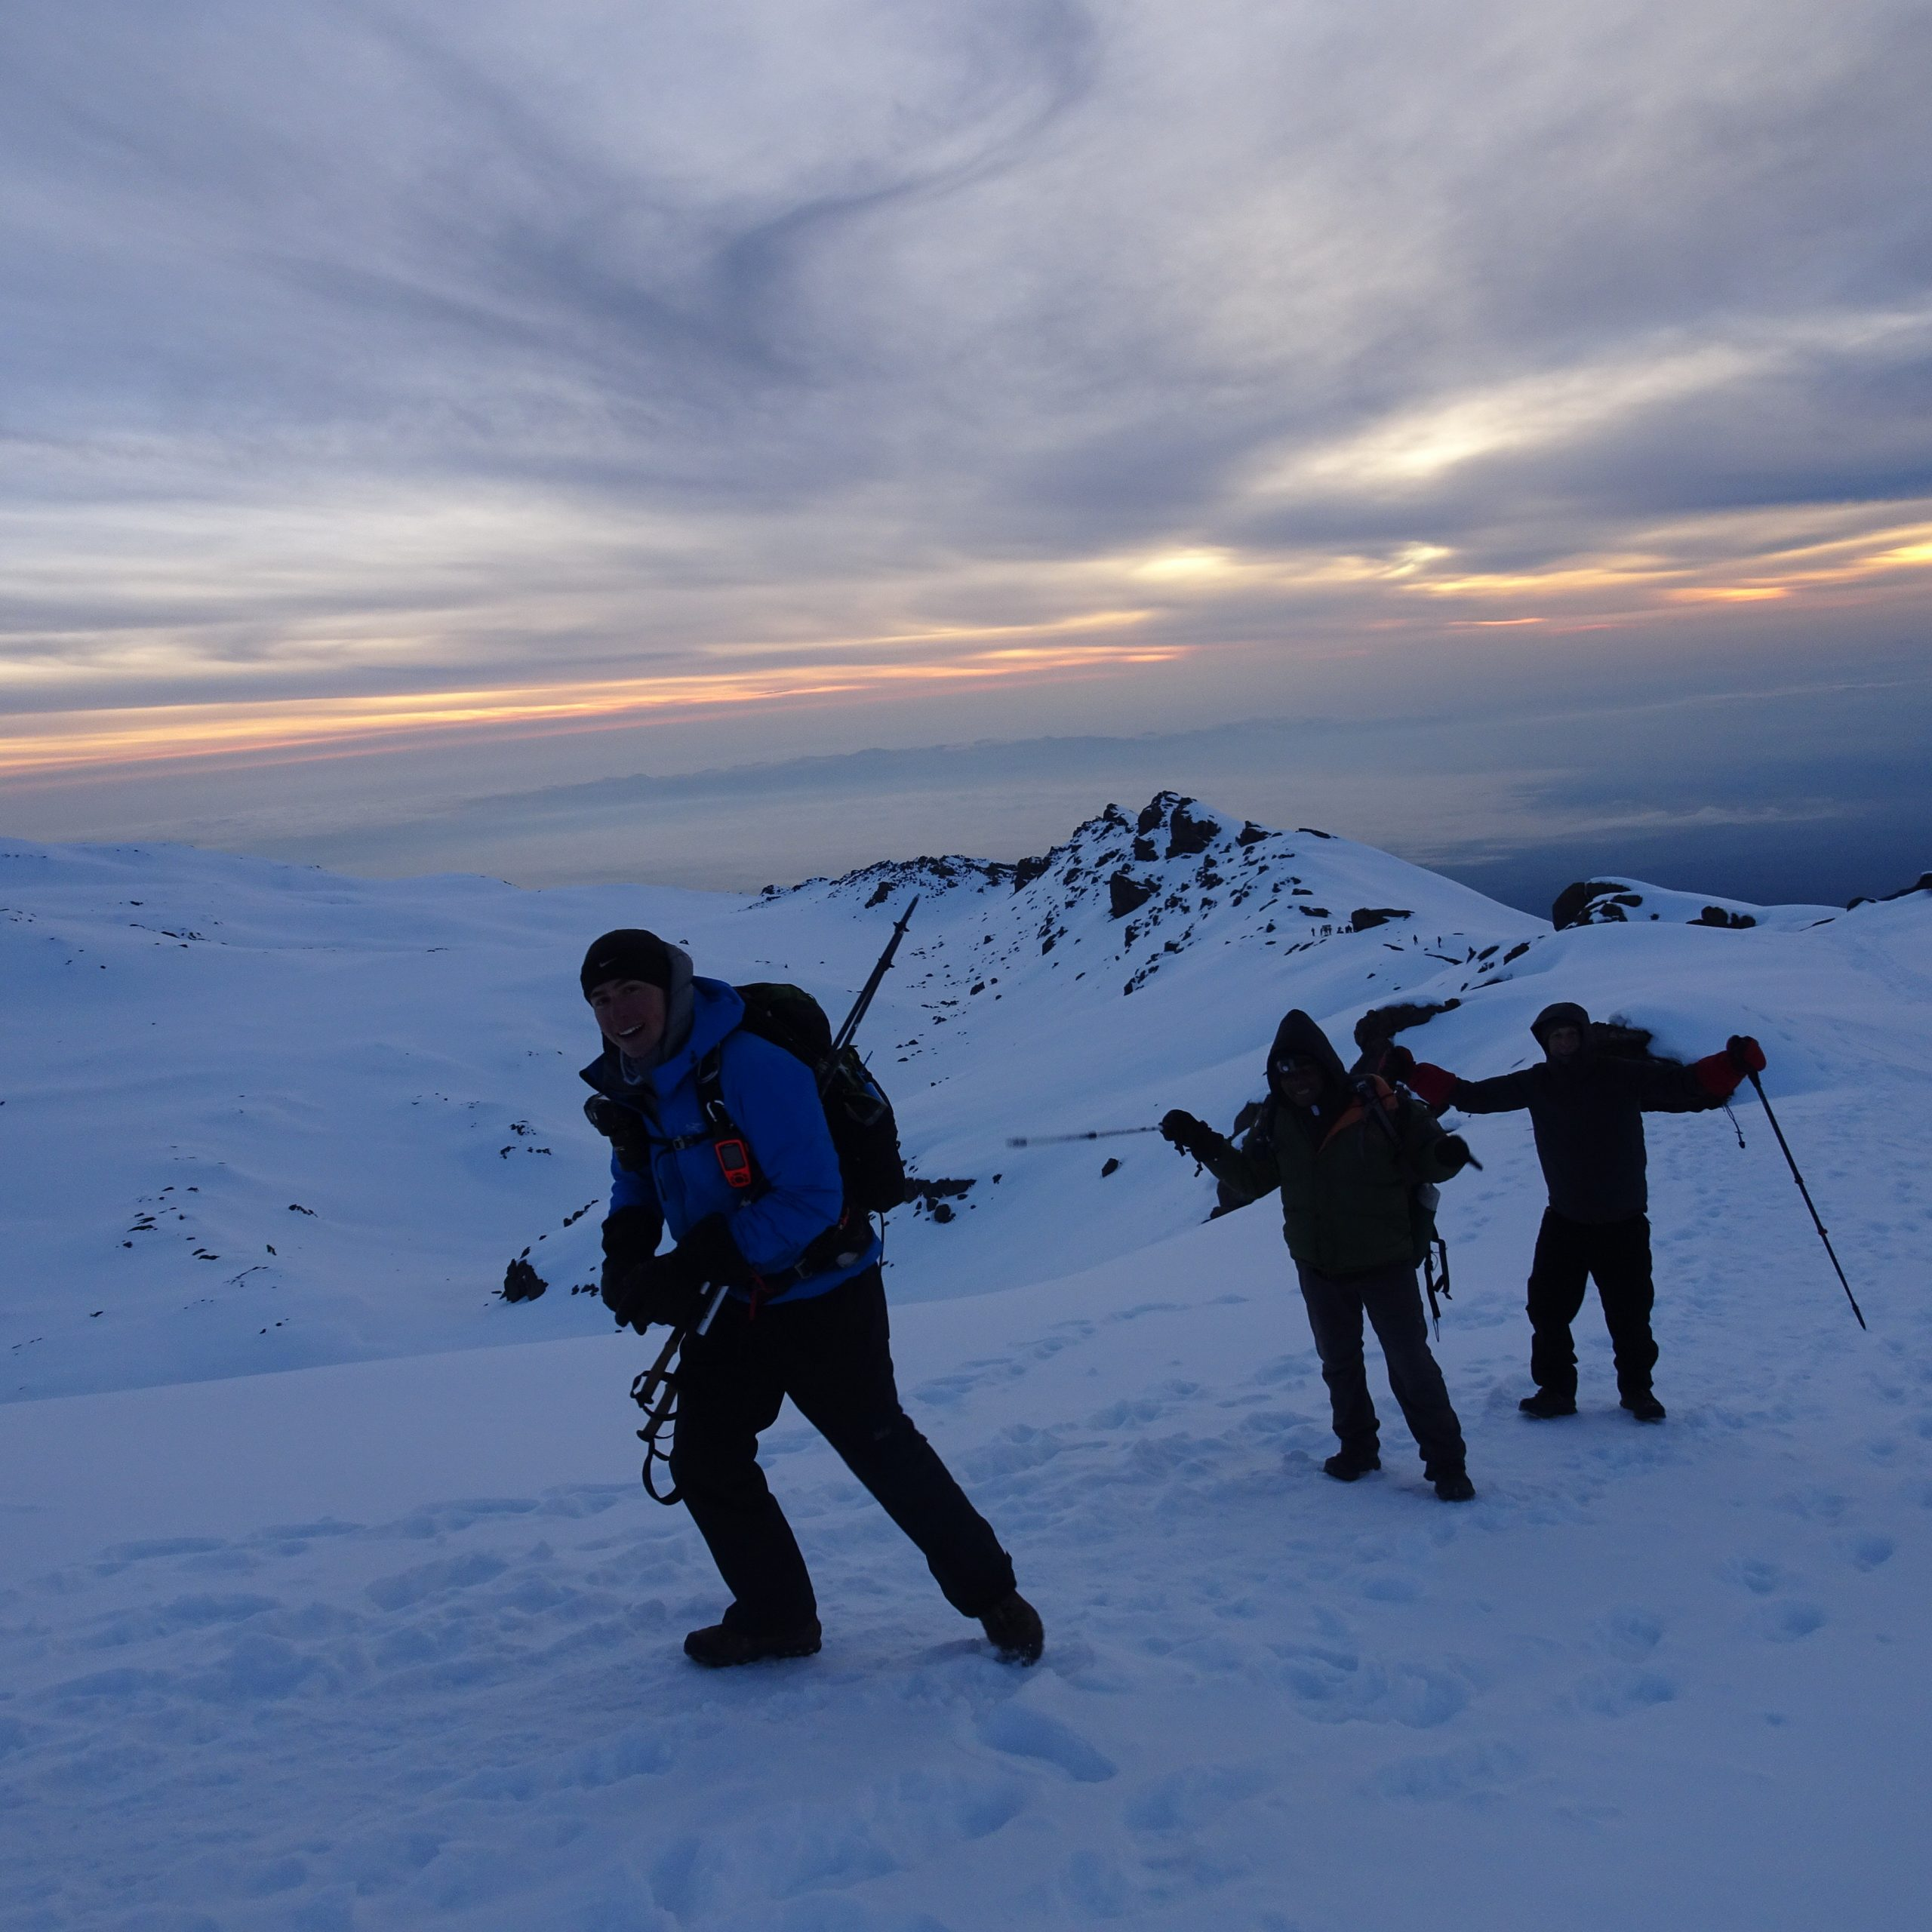 Day Six – Kibo Camp (4,700 m/15,419 ft) – Summit via Gillman's Point (5,685 m/18,651 ft) to Uhuru Peak (5,895 m/19,340 ft) and descent to Horombo Hut (3,720 m/12,205 ft)